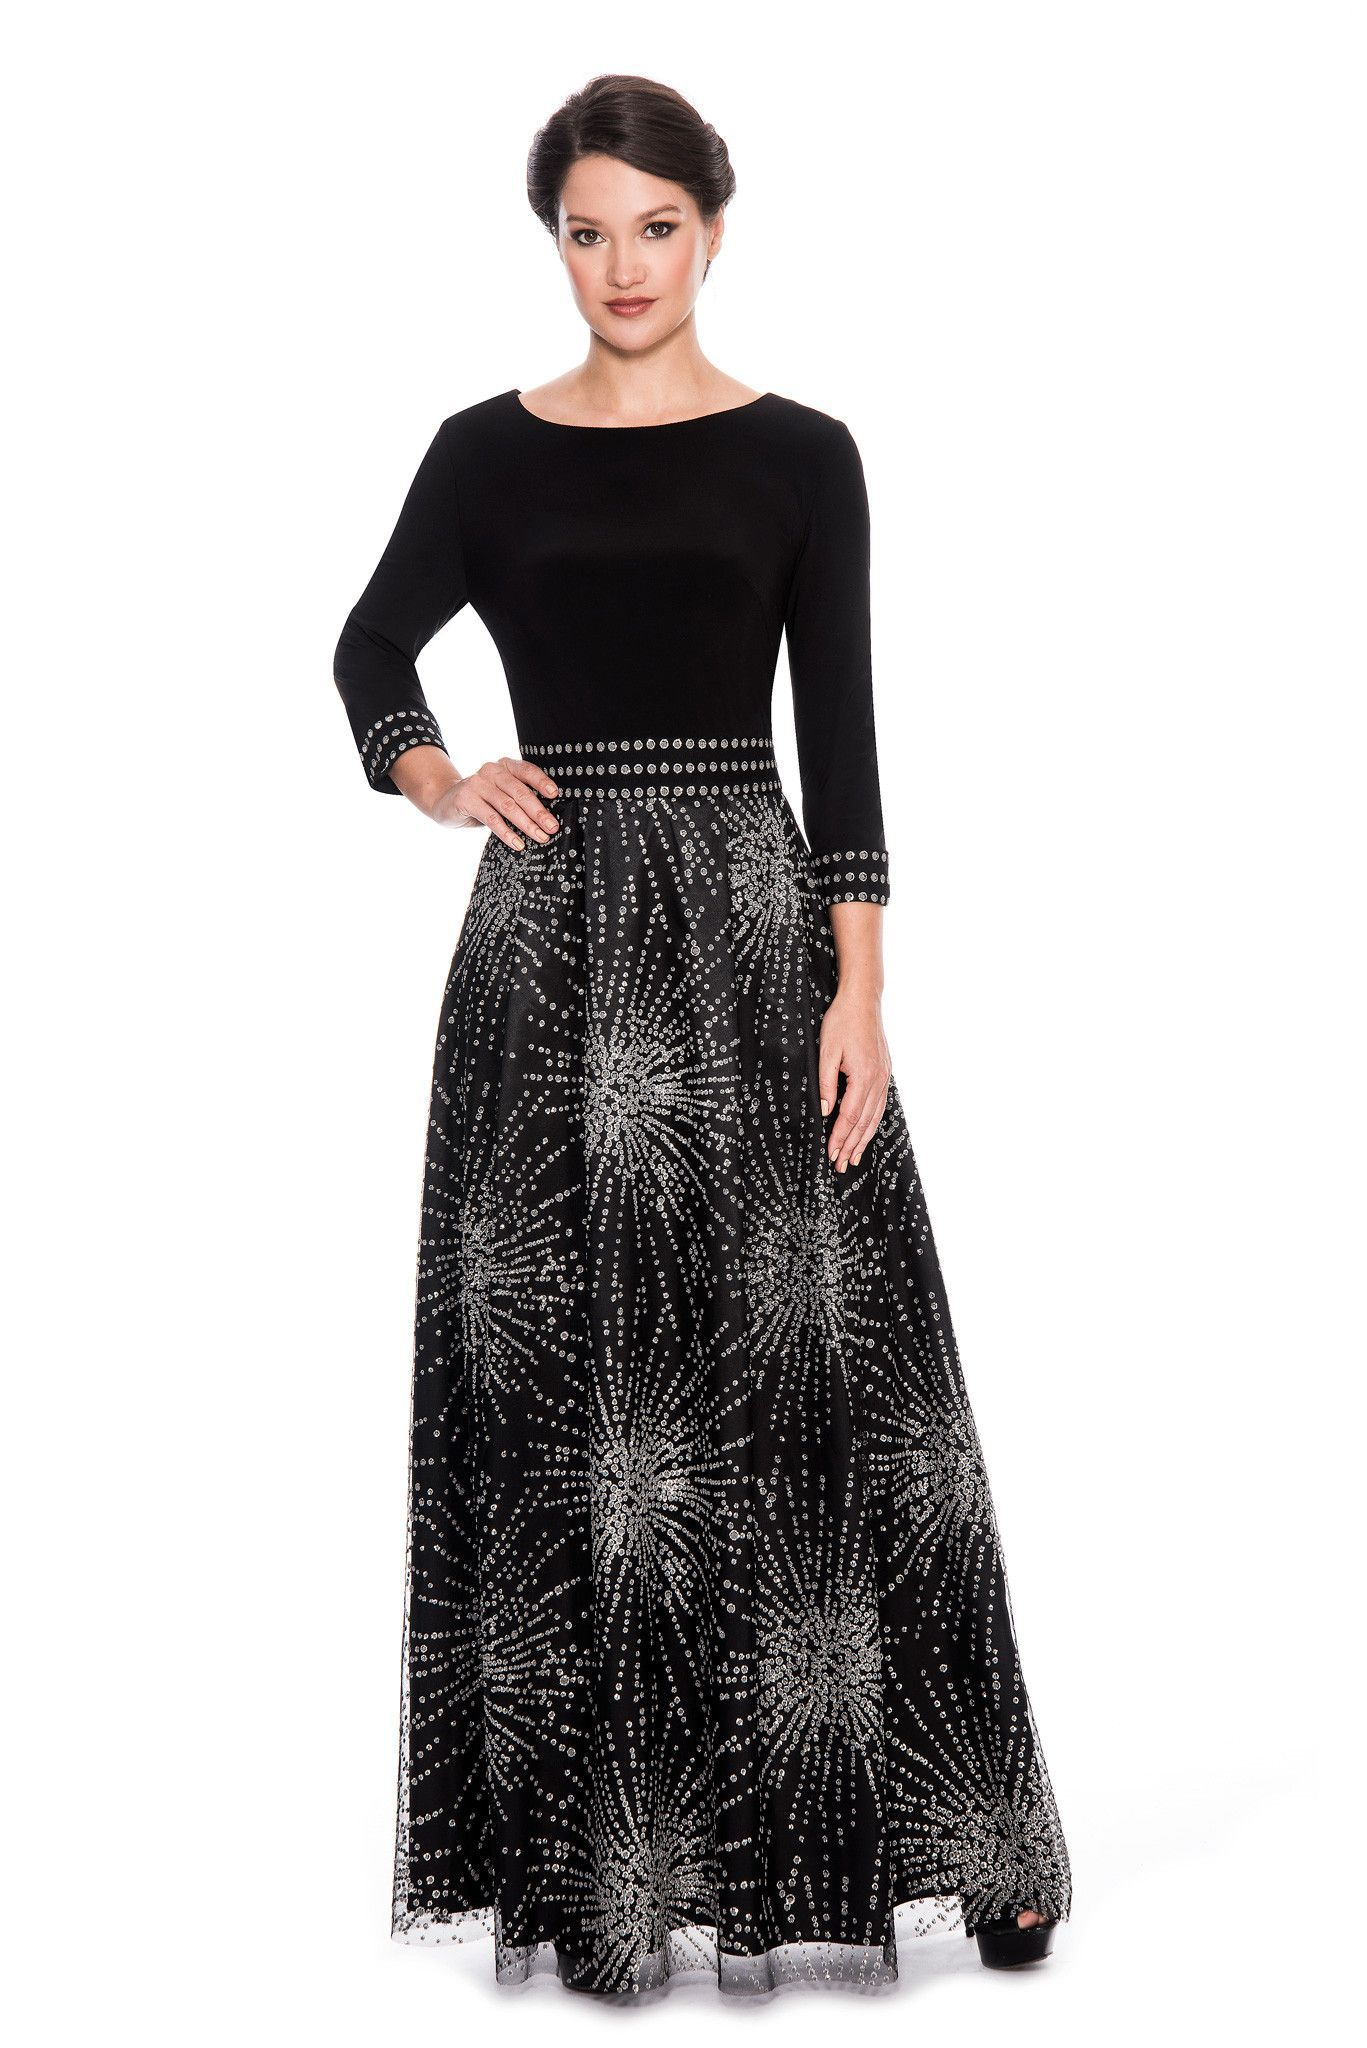 EMMA STREET ES9876 3/4 Sleeve Long Dress